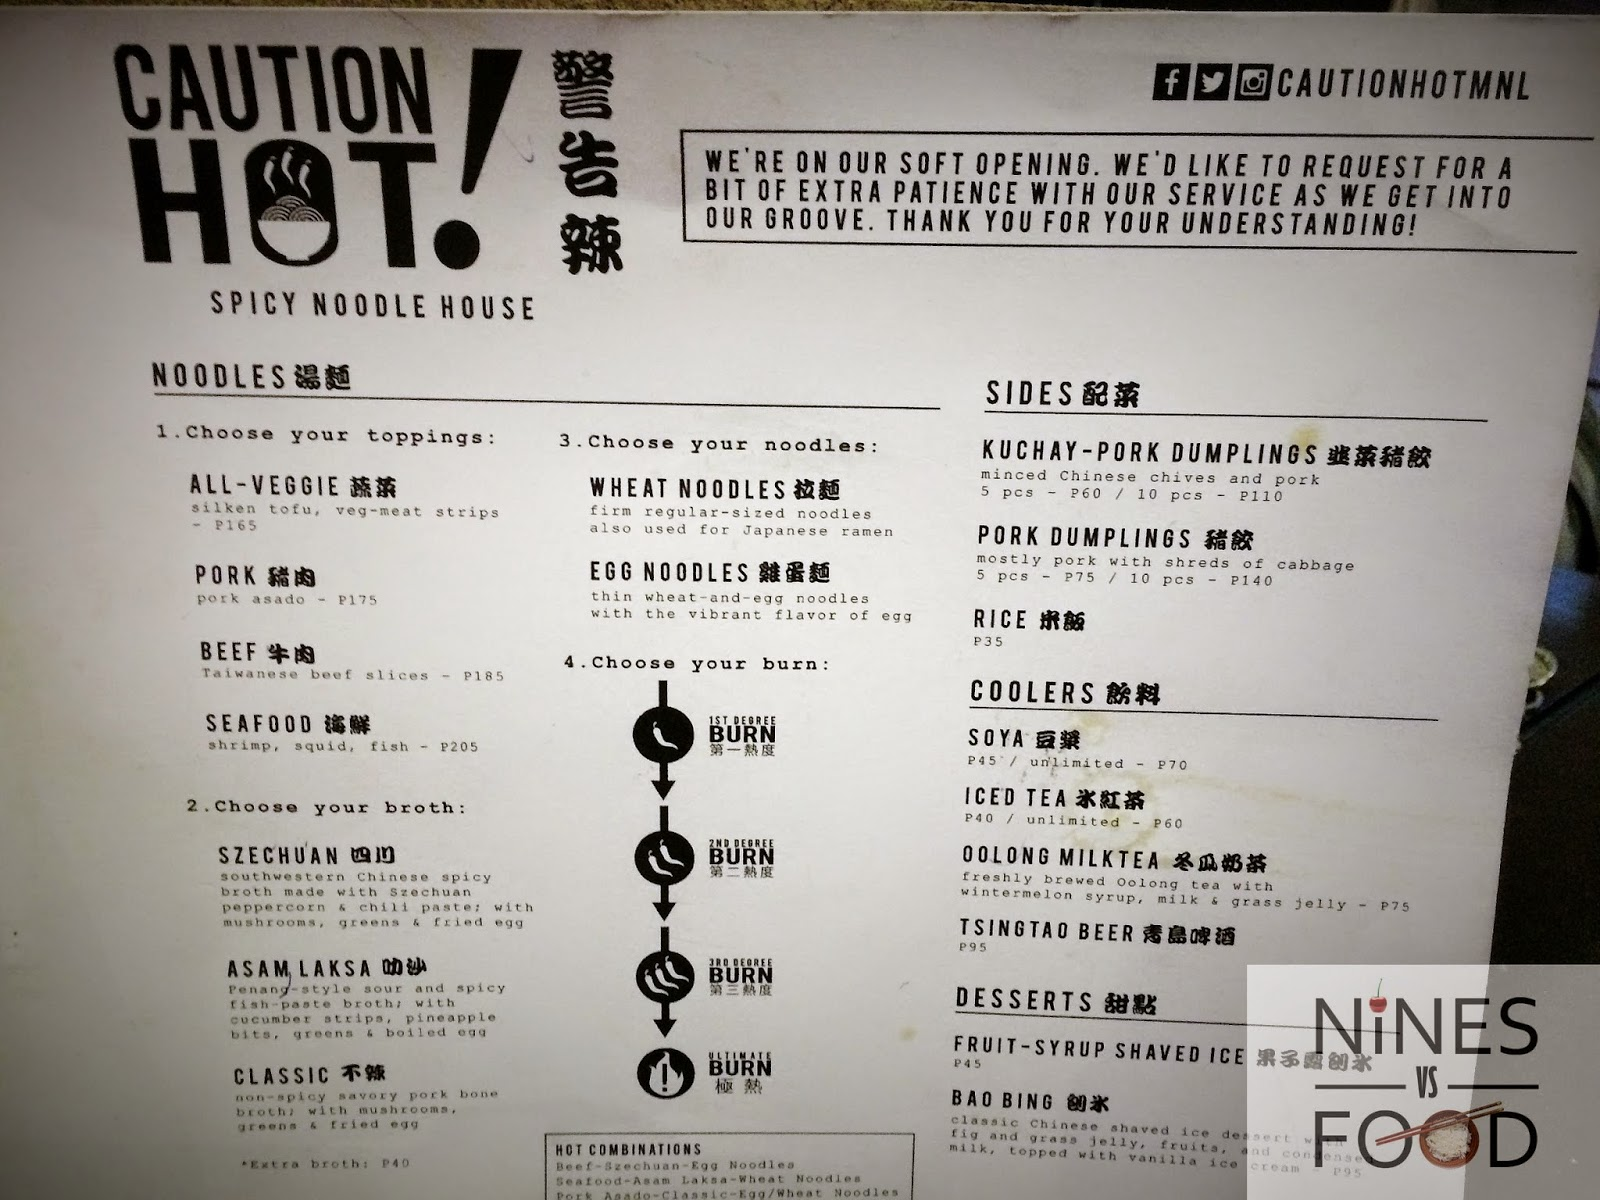 Nines vs. Food - Caution Hot! Manila-3.jpg